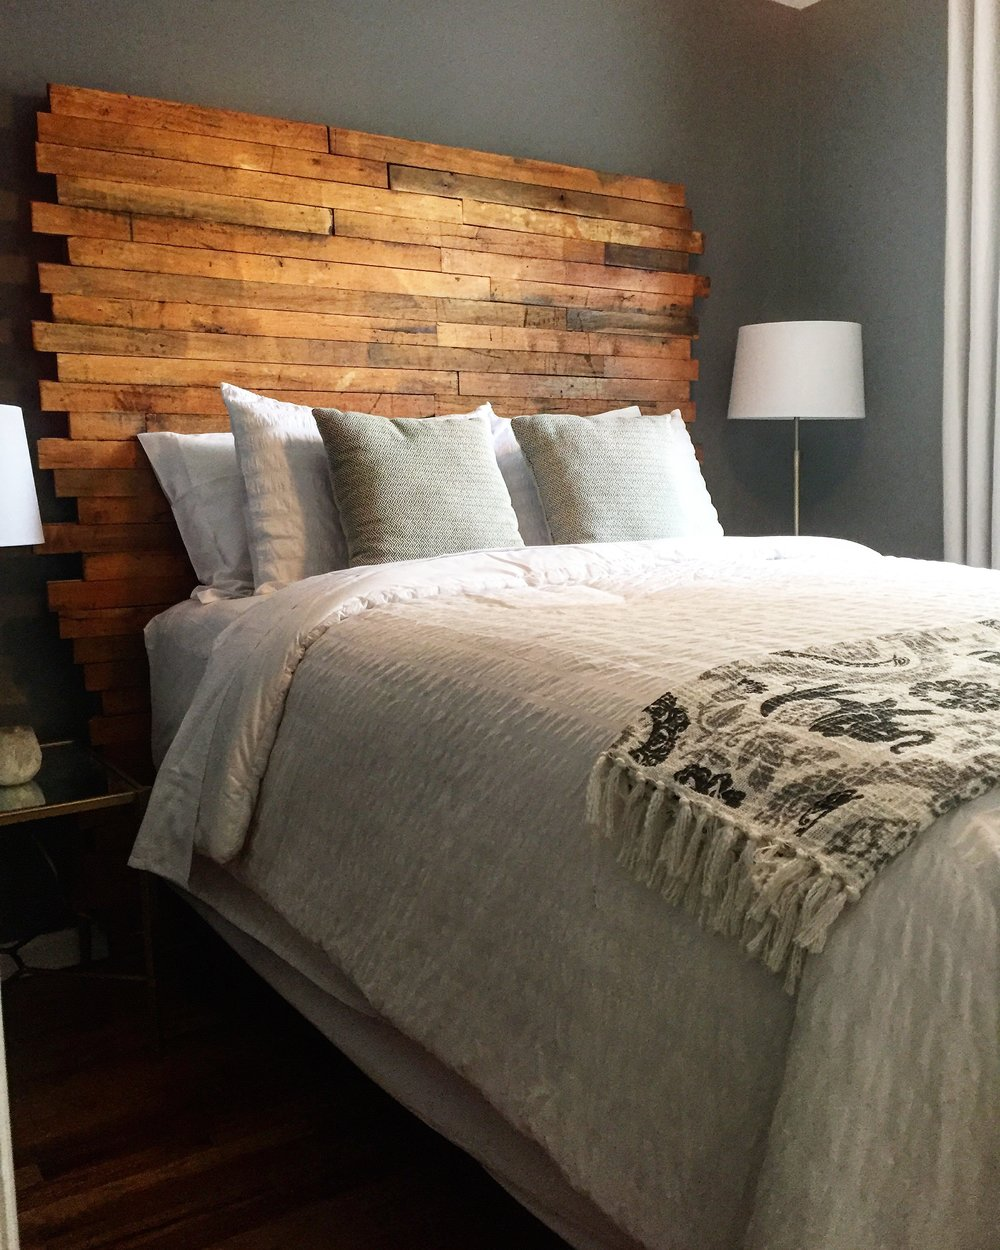 Custom headboard created for the guest bedroom. Made from old gym floor boards found in a building set for demolition in a small town in Nebraska.